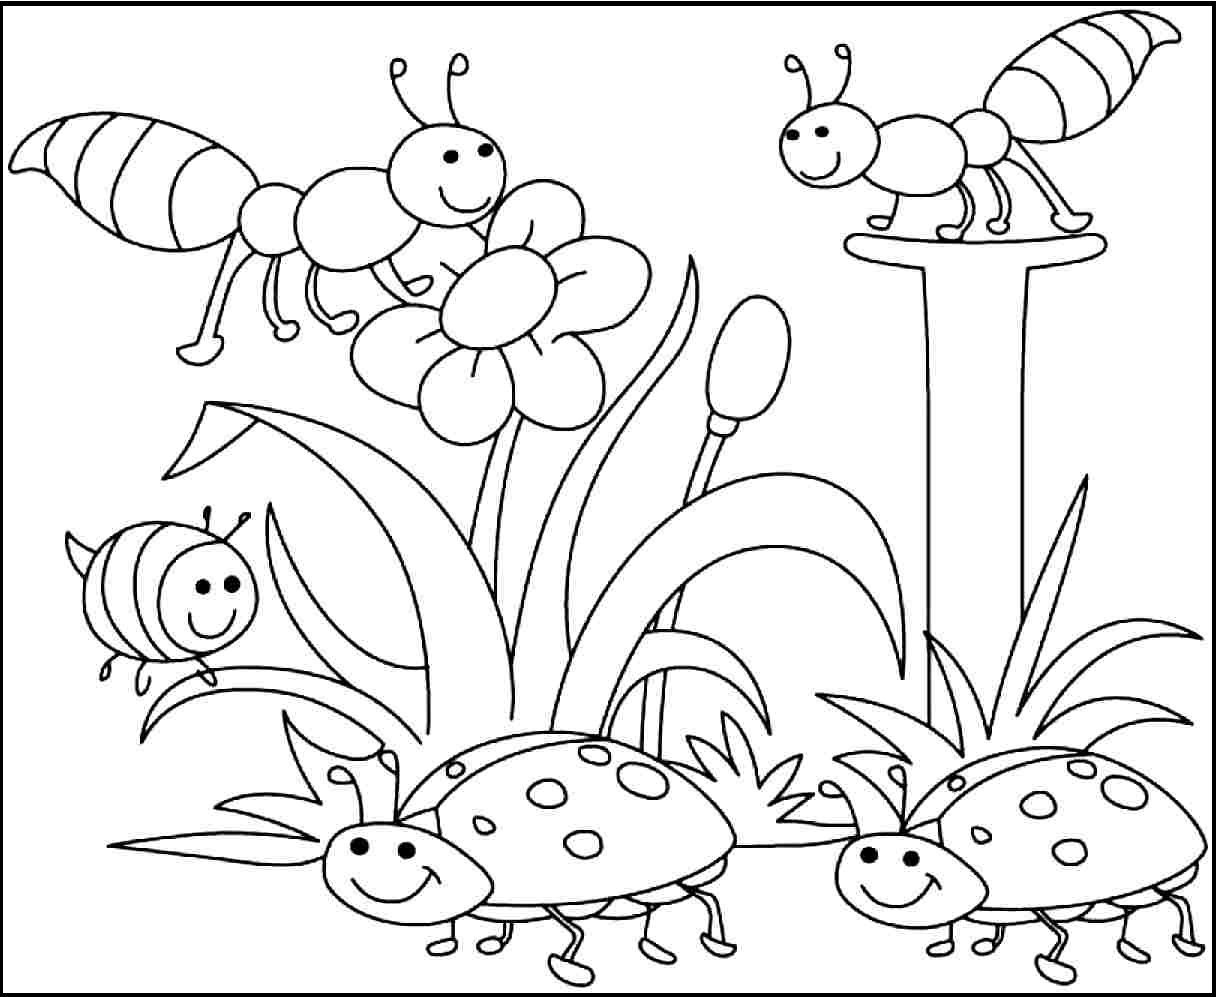 1216x997 Insects Pleased With Spring Day Coloring Picture For Kids Spring